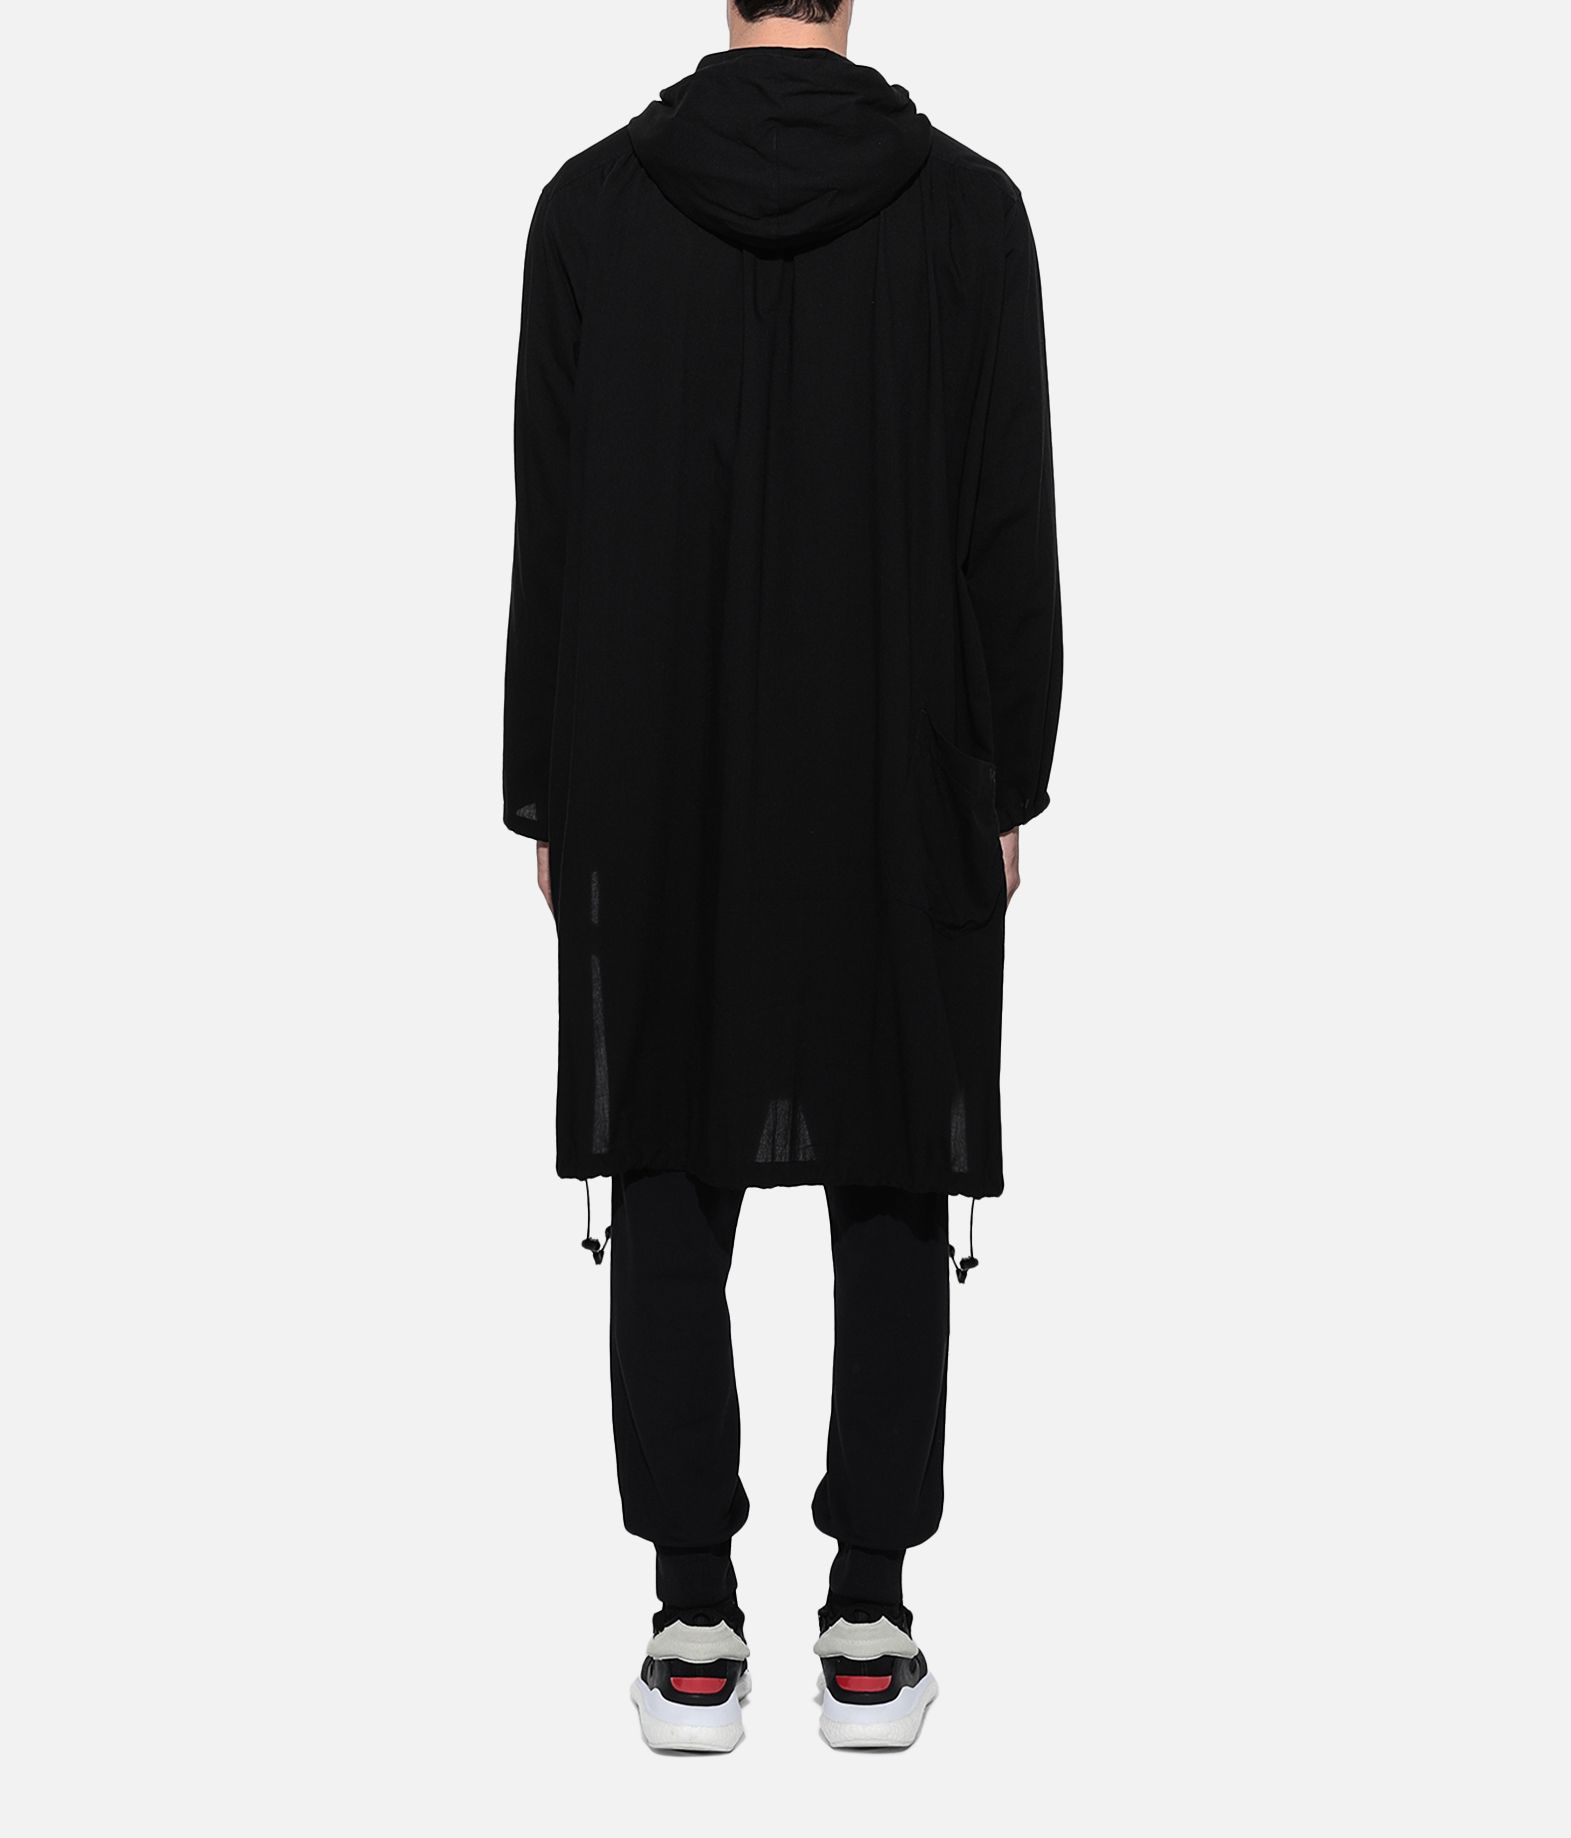 Y-3 Y-3 Hooded Long Shirt Long sleeve shirt Man d